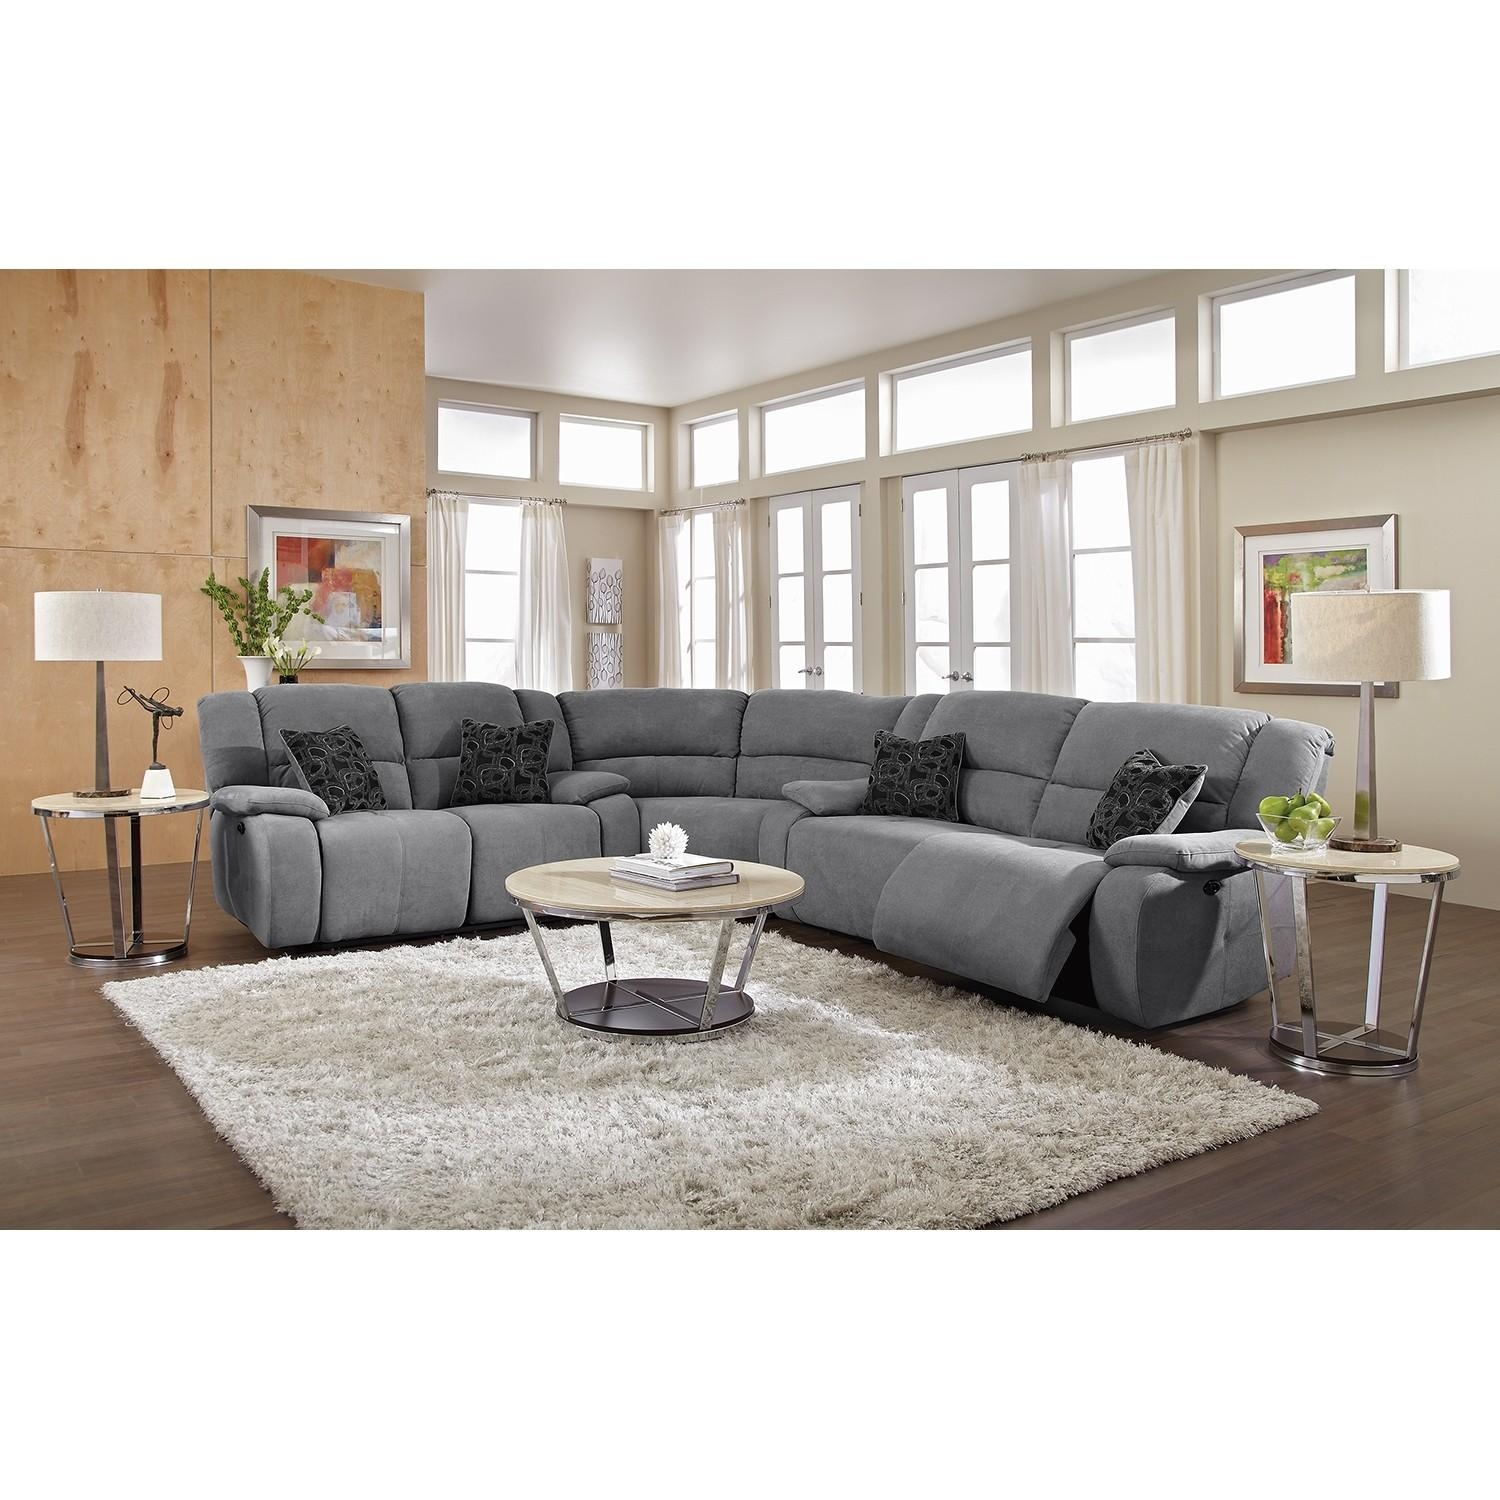 Sofas : Wonderful Black Sectional Couch Grey Sectional Couch Within Gray Leather Sectional Sofas (View 21 of 21)